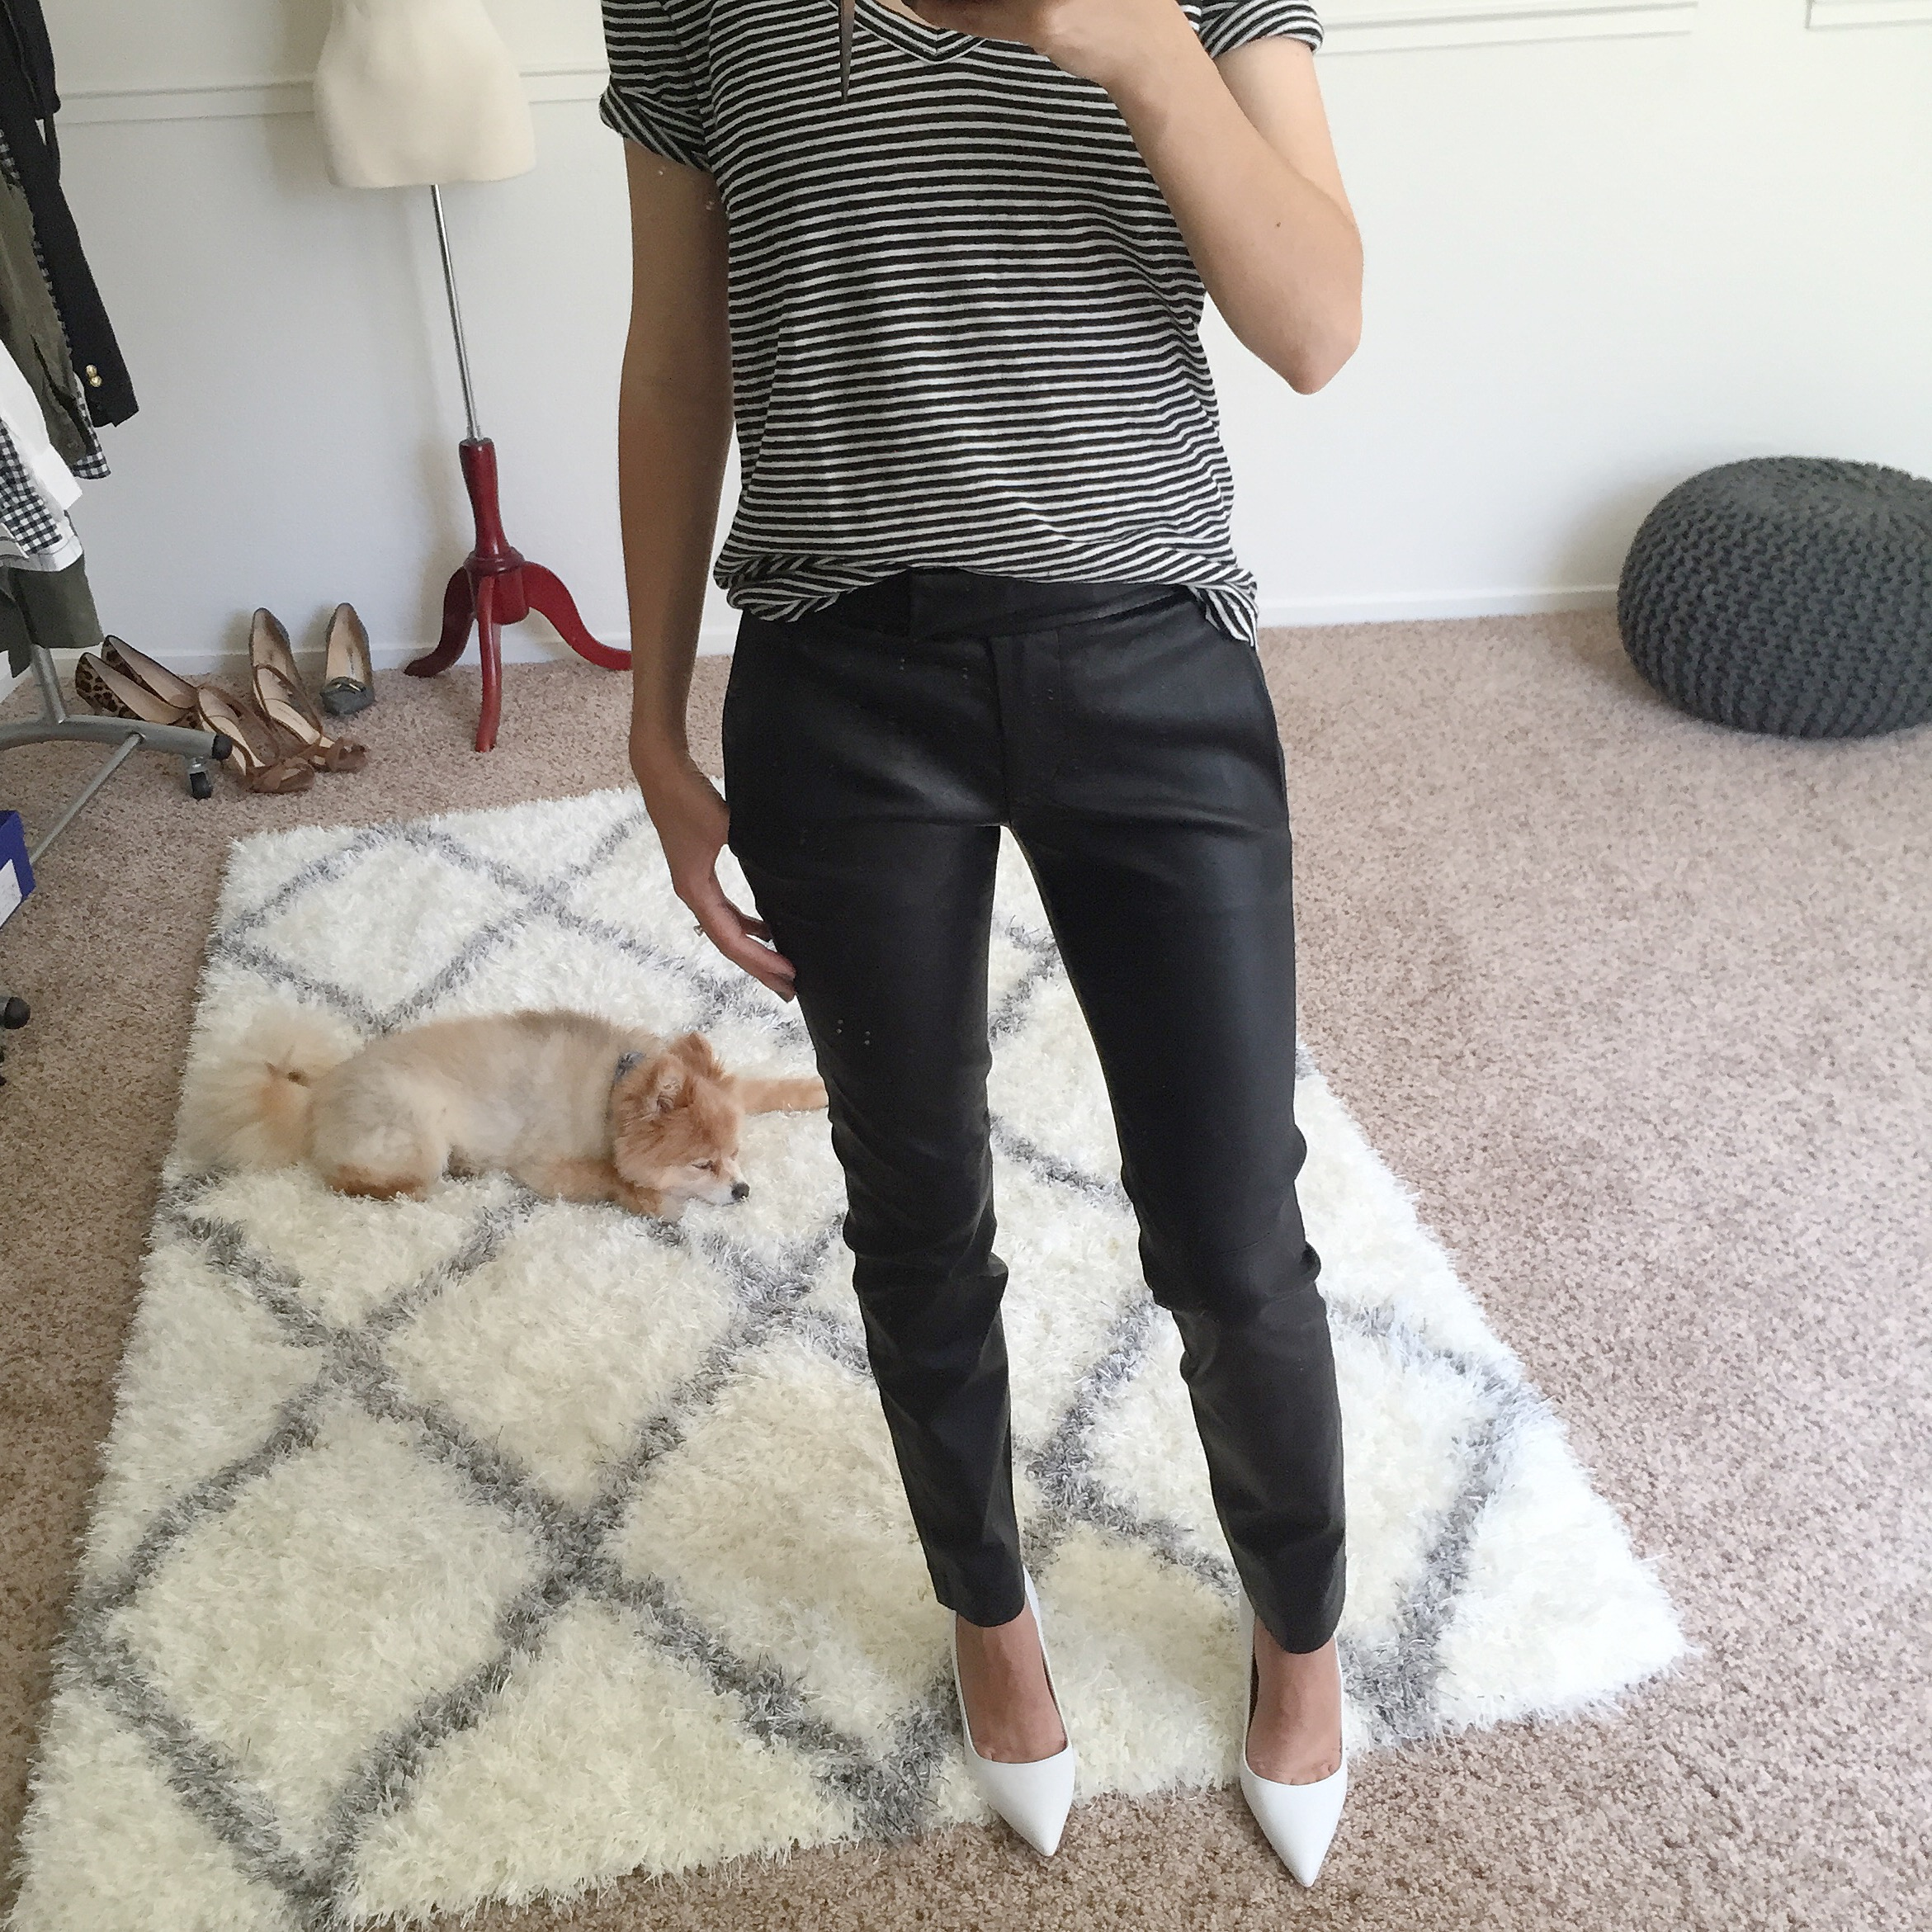 J.Crew Petite Leather Ryder Pant Fit Review